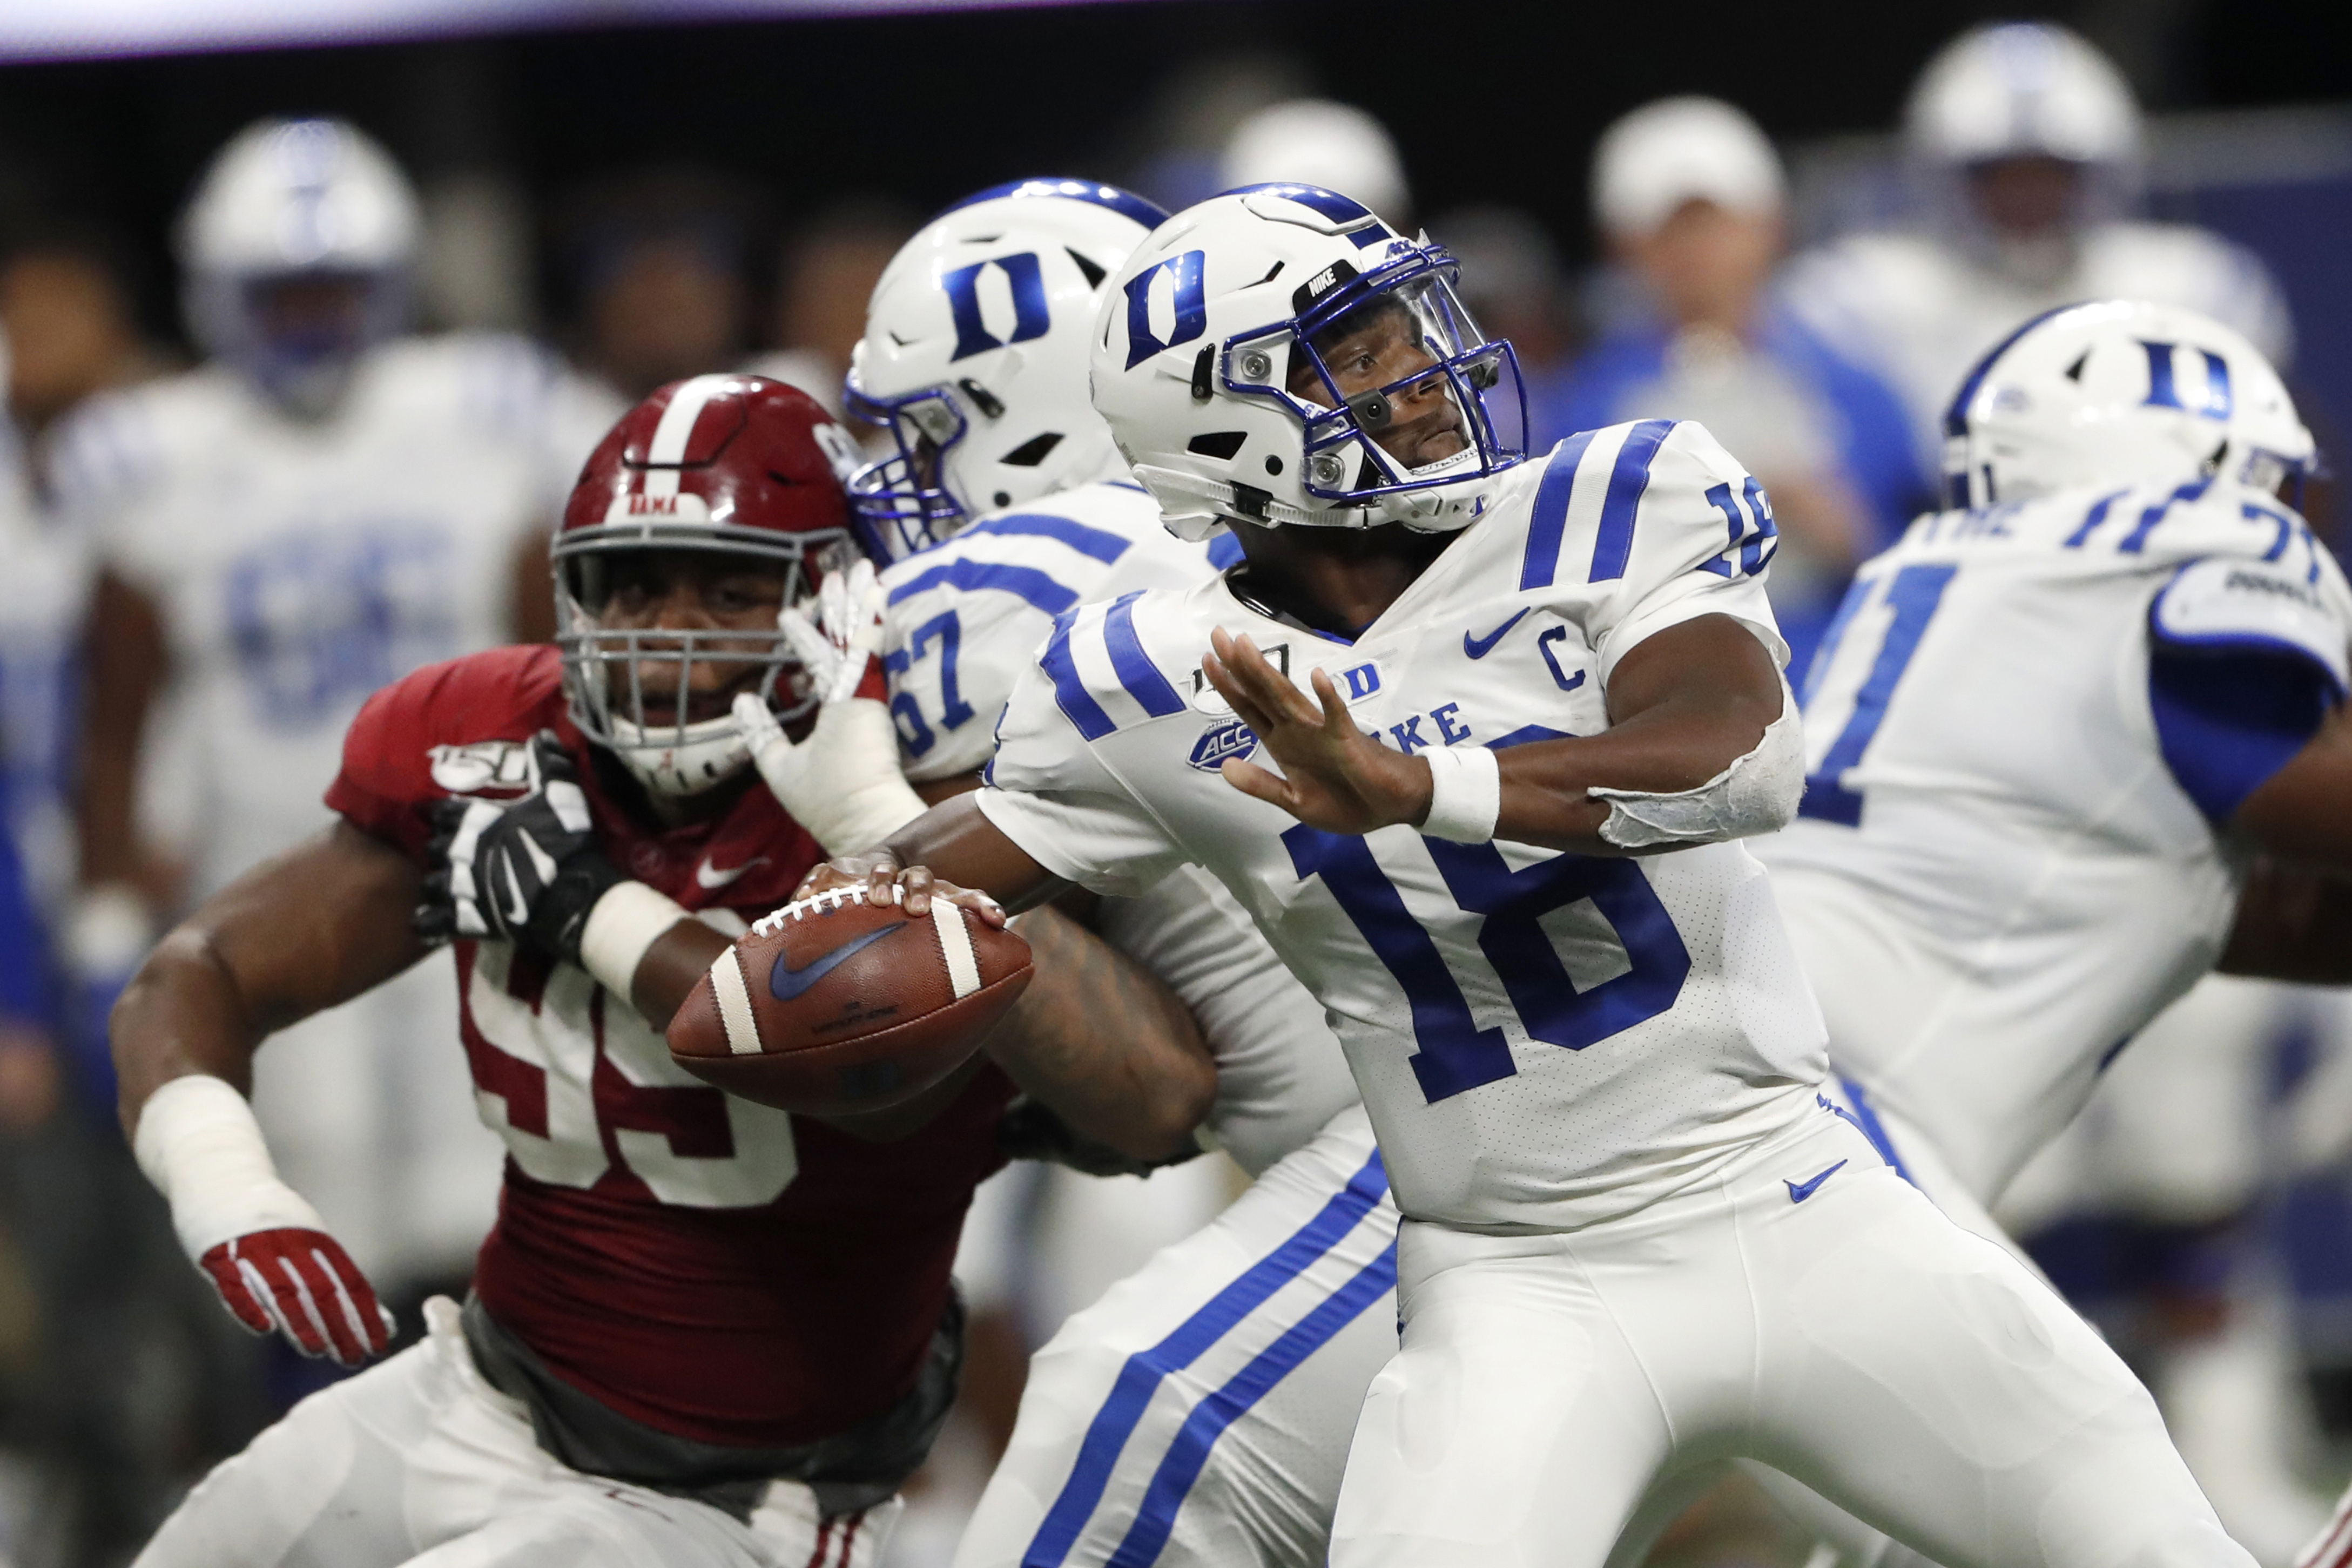 Duke brushes off Bama loss, prepares for NC A&T